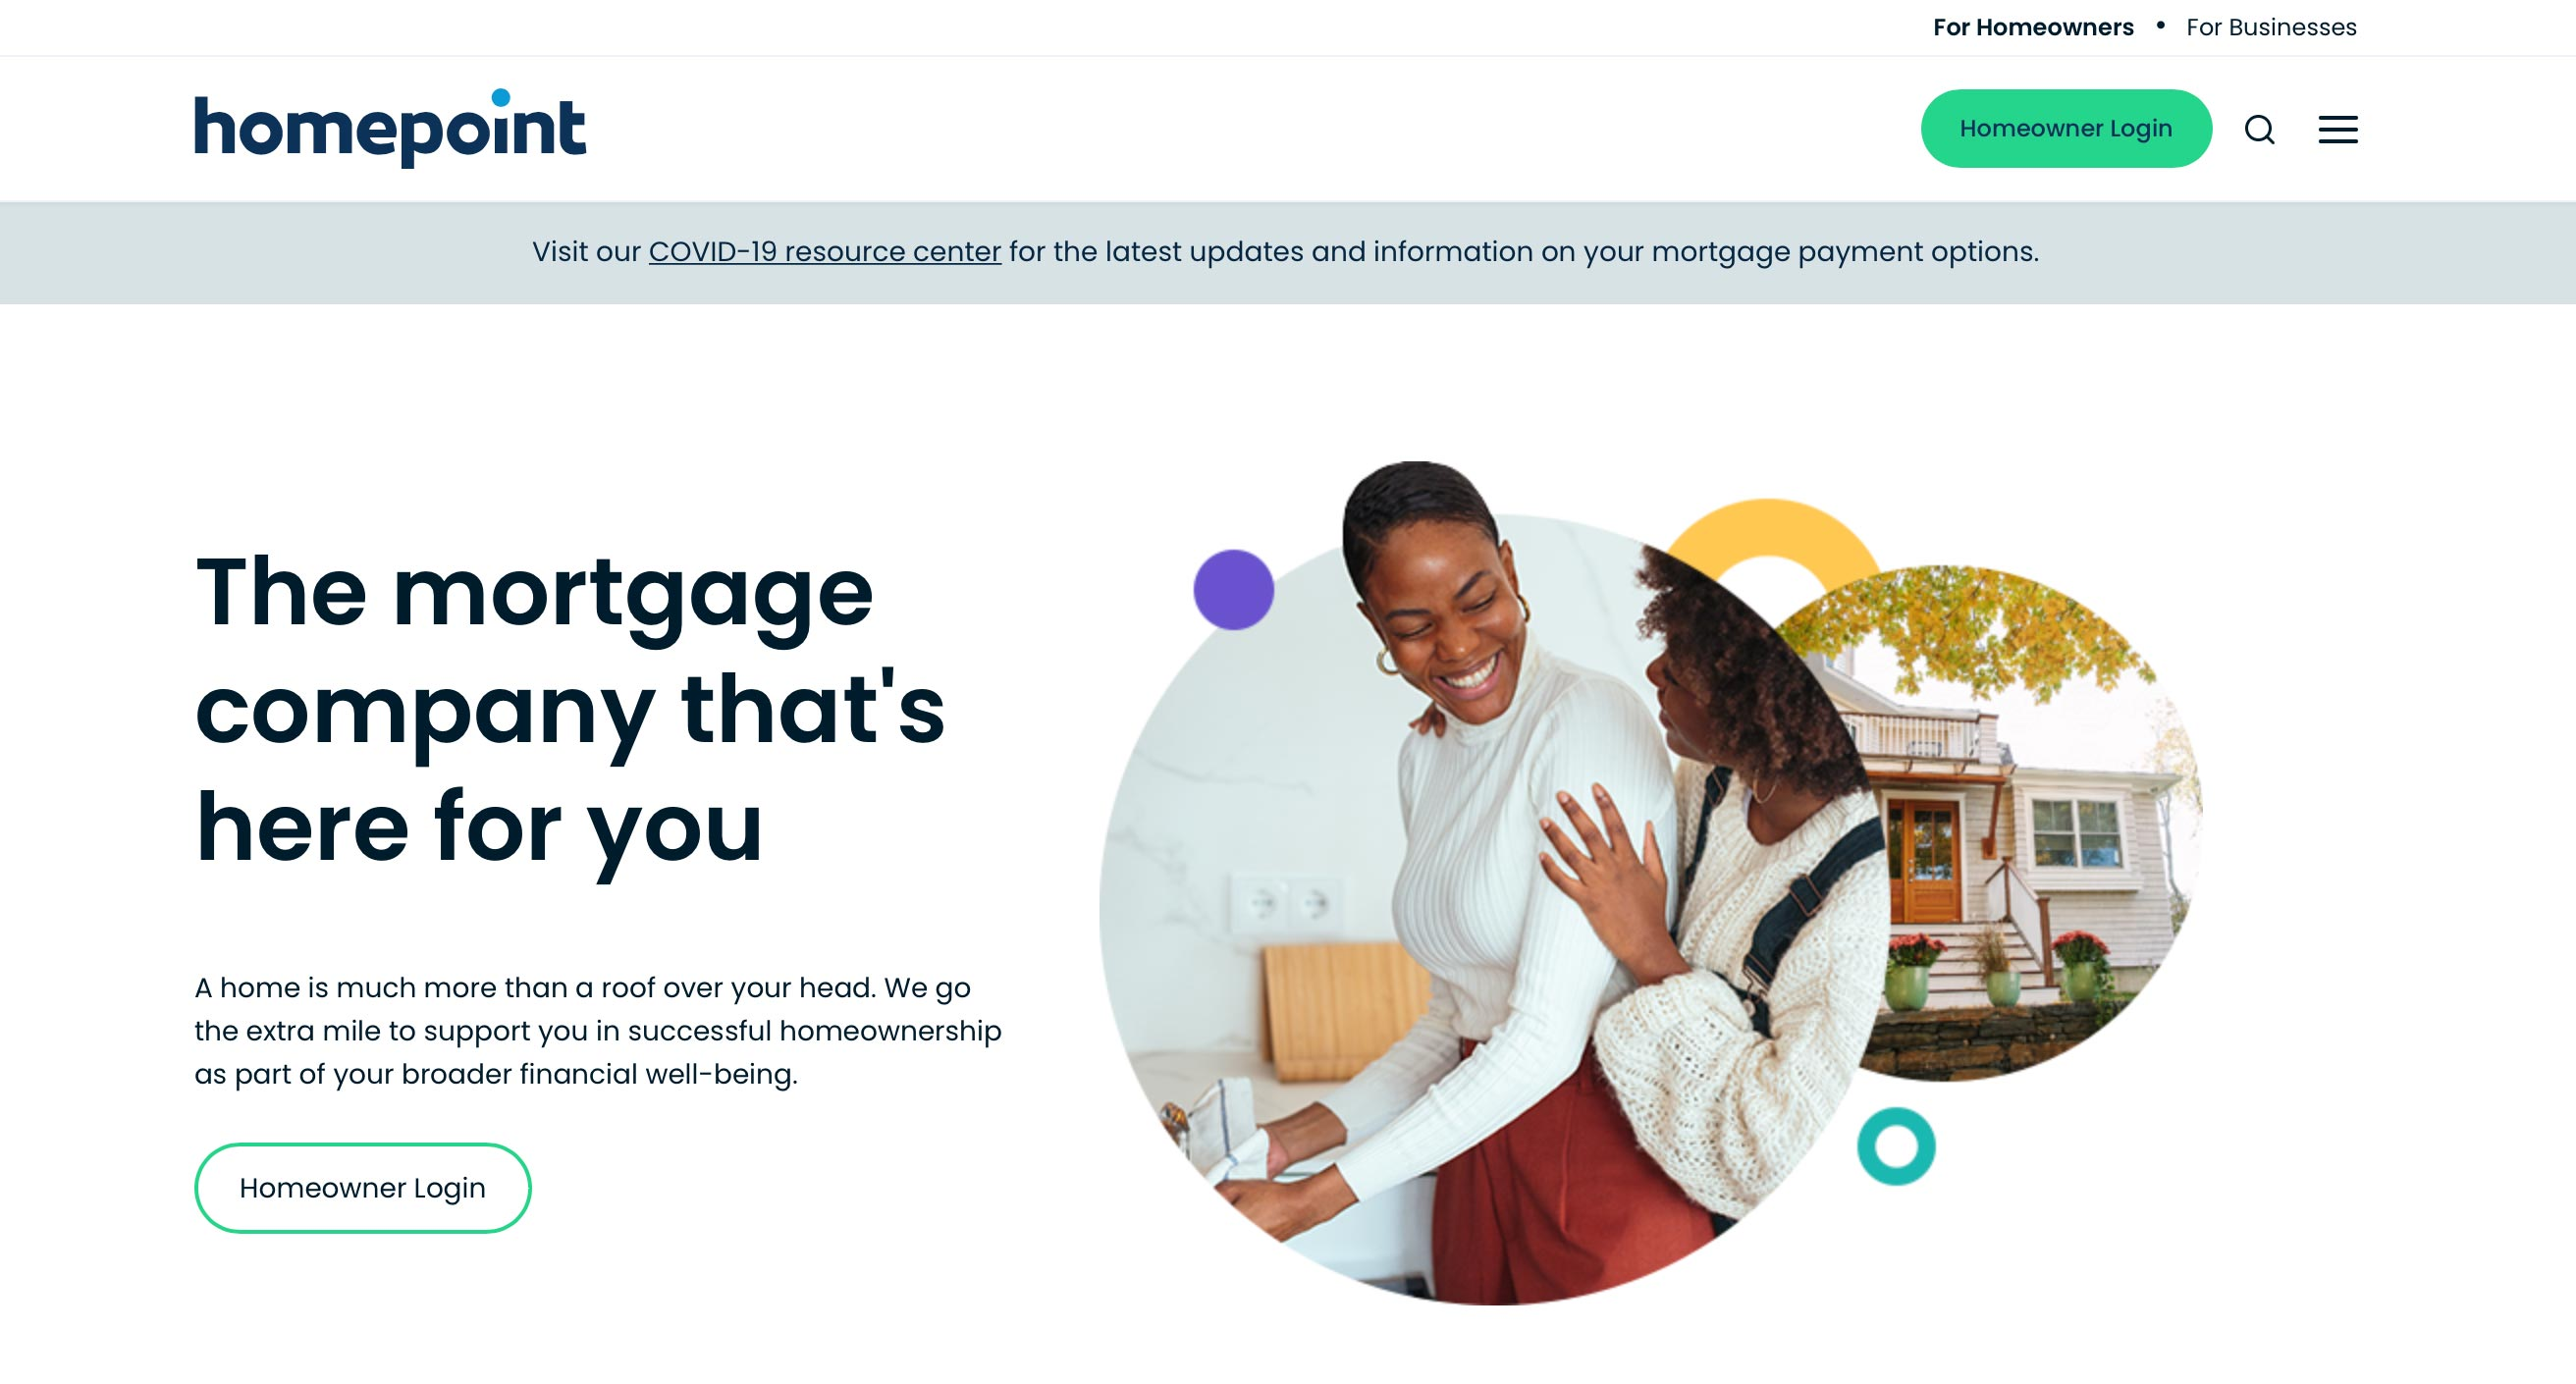 homepoint financial site